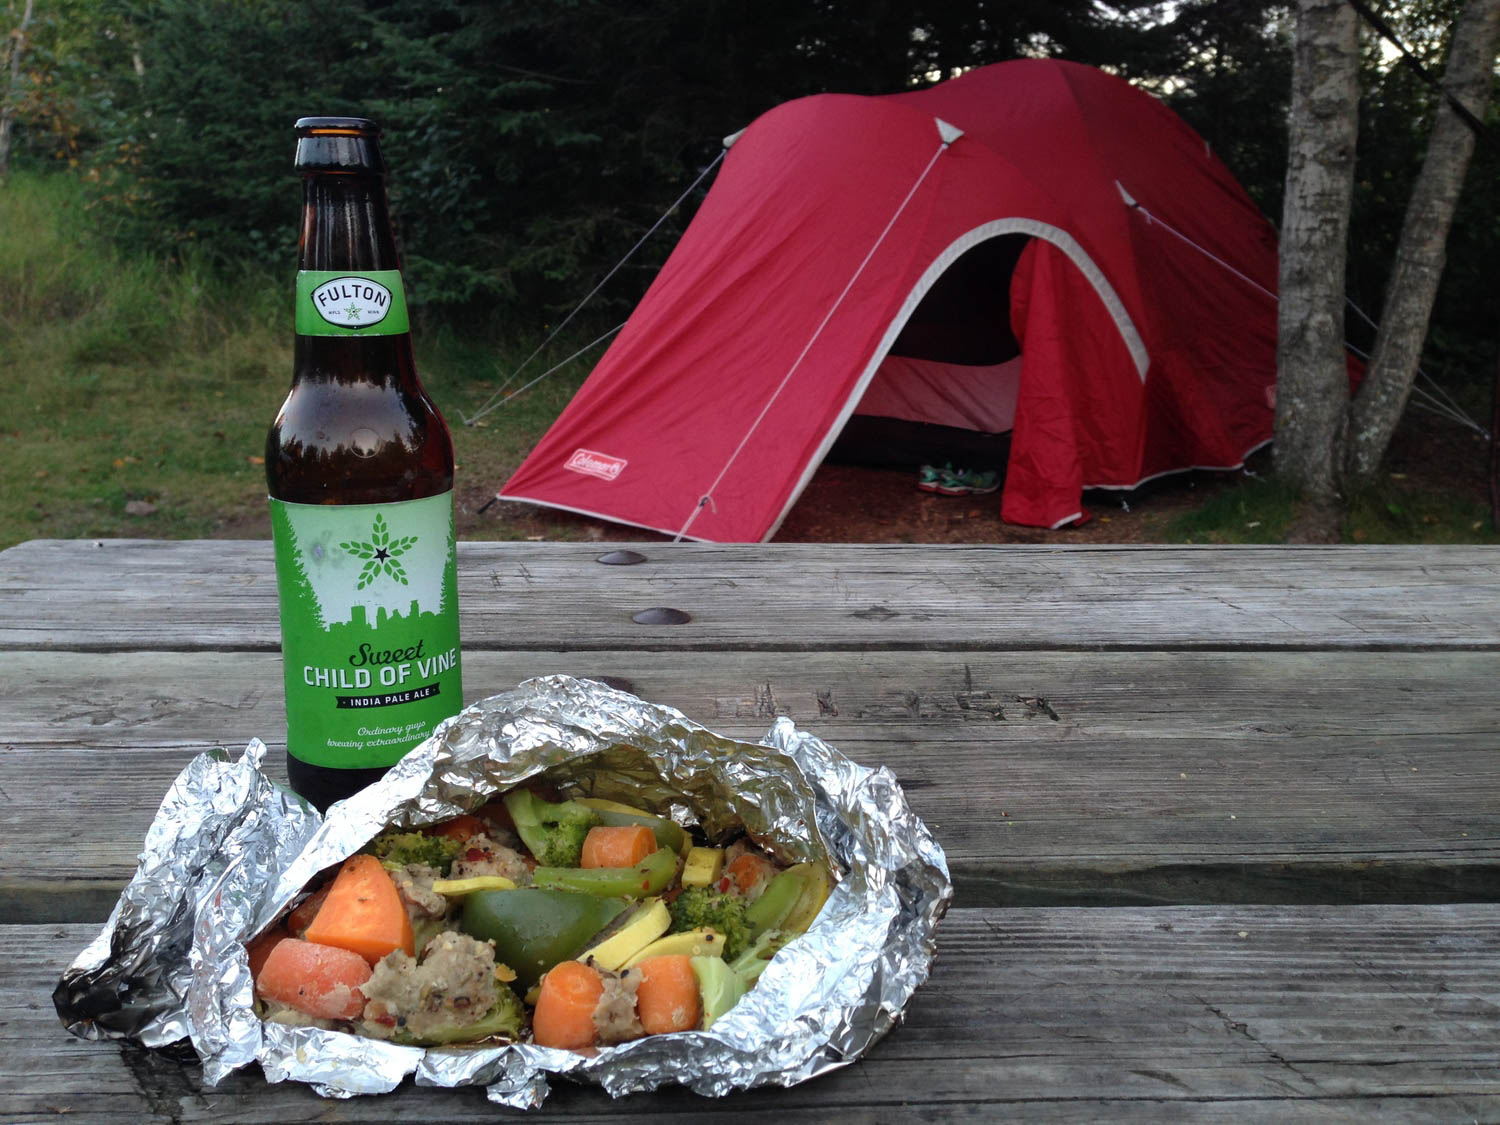 Sweet Child of Vine Camping Love Letter to Minnesota